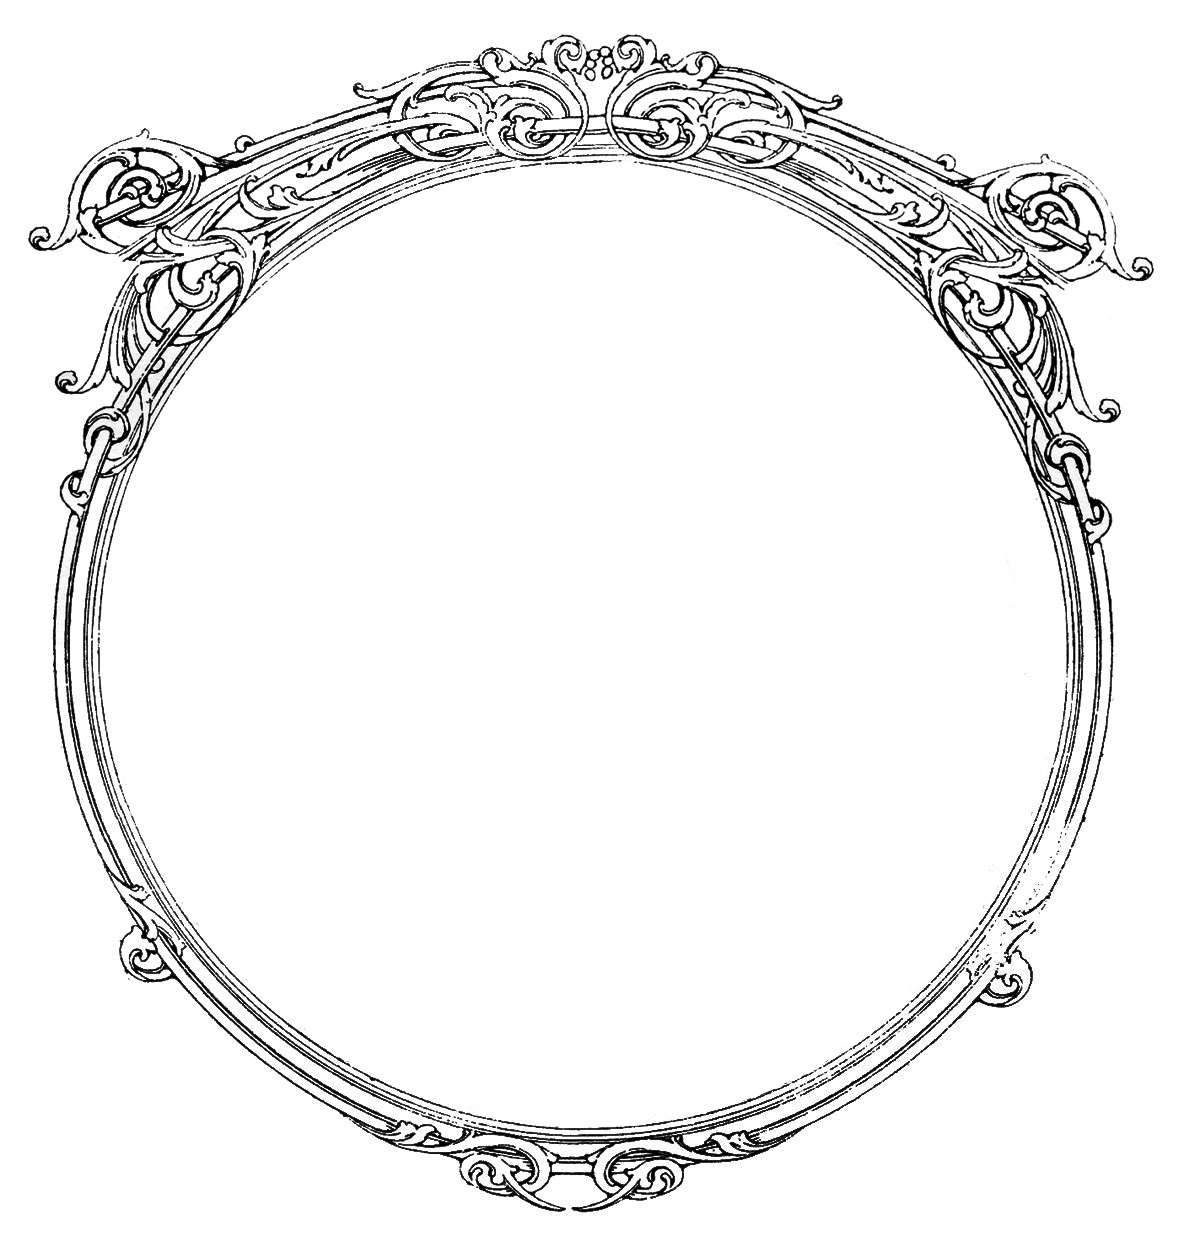 2019 circular silver clipart clipart images gallery for free.